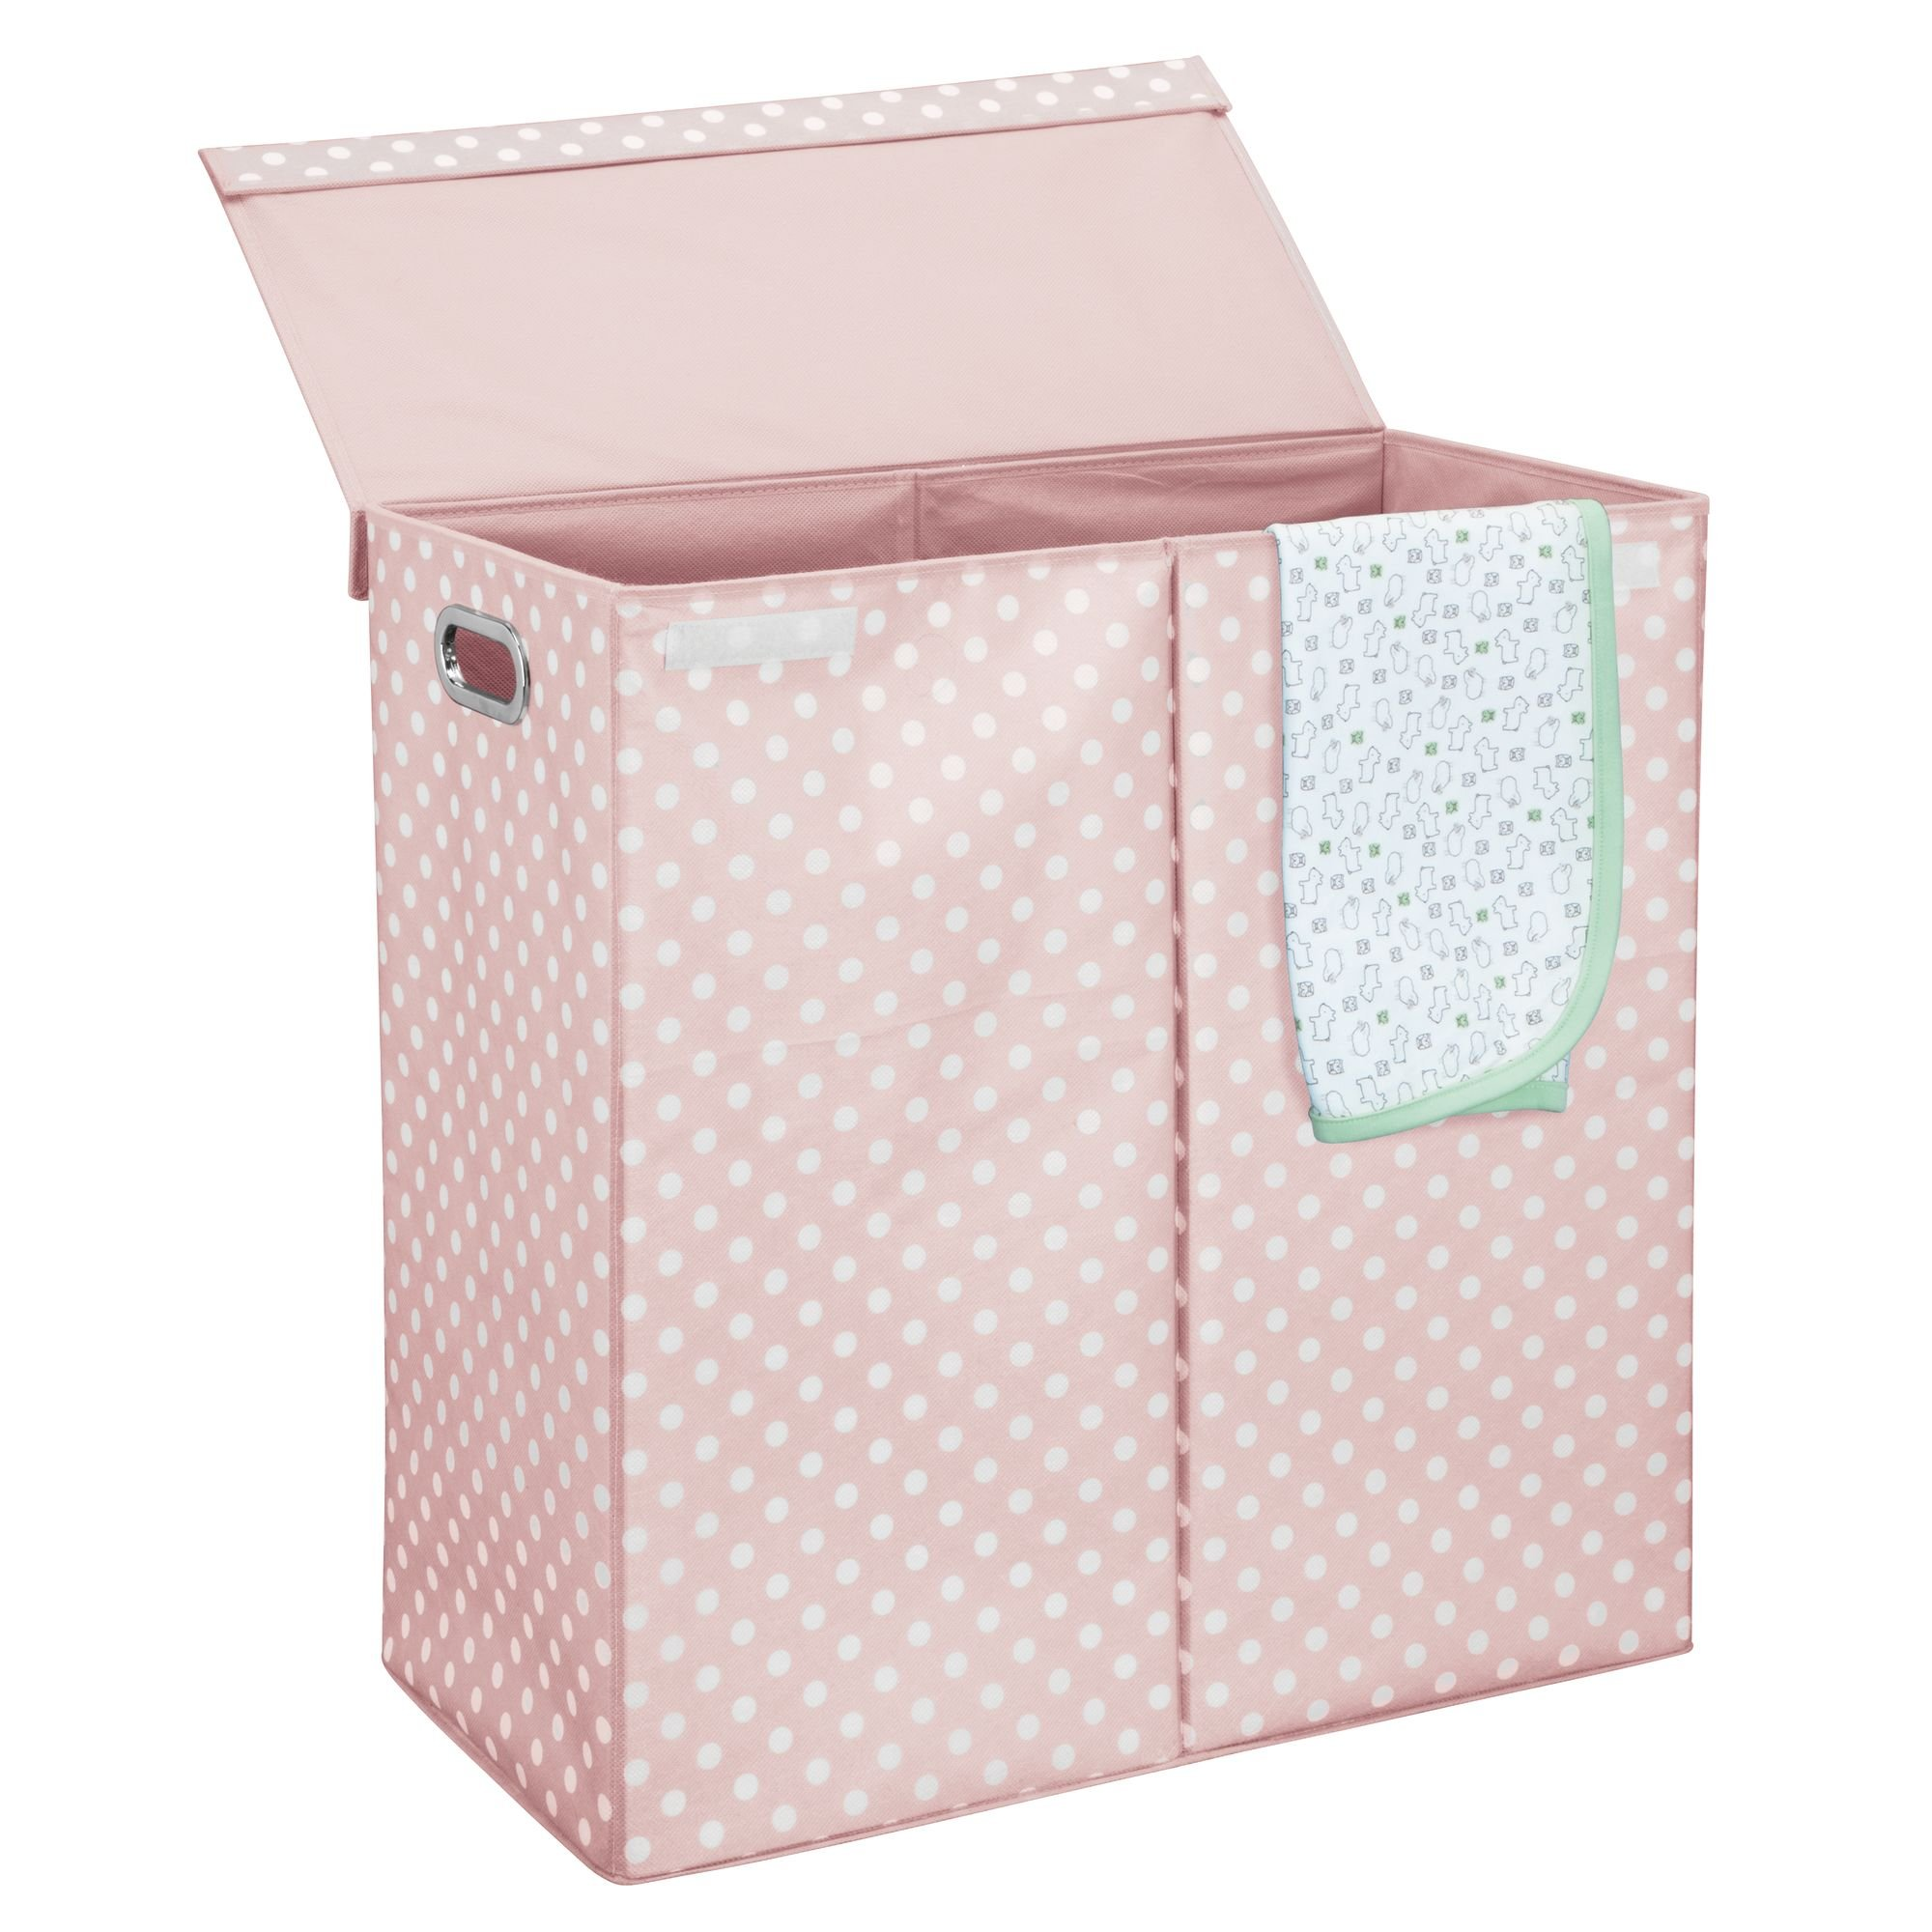 mDesign Extra Large Divided Laundry Hamper Basket with Removable Lid, Built-in Handles - Portable and Foldable for Compact Storage - Fun Polka Dot Pattern - Light Pink with White Dots, Chrome Handles by mDesign